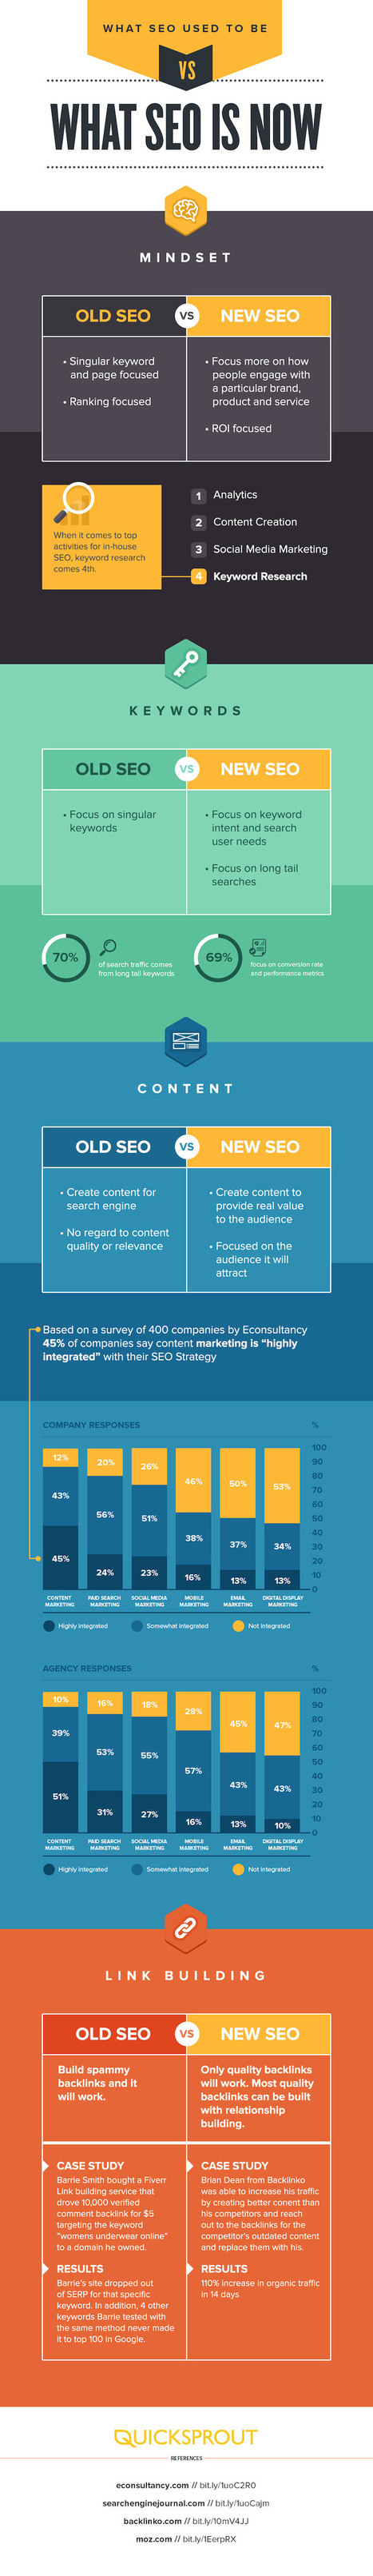 The Old SEO Versus The New SEO [INFOGRAPHIC] | The Social Touch | Scoop.it